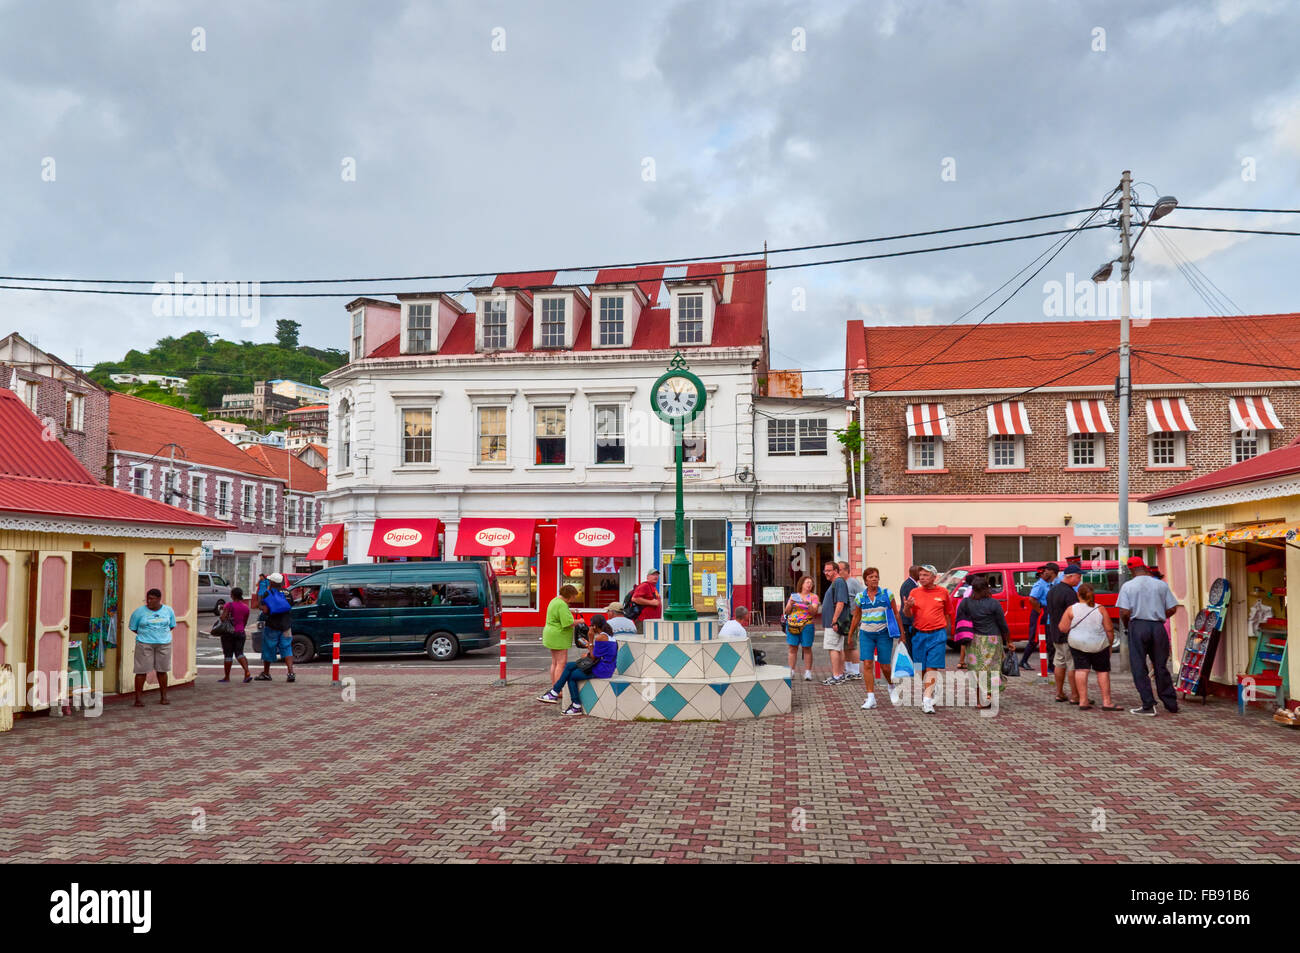 Scene of daily life in the capital of Grenada, with people walking on the sidewalks and traffic in the streets. - Stock Image